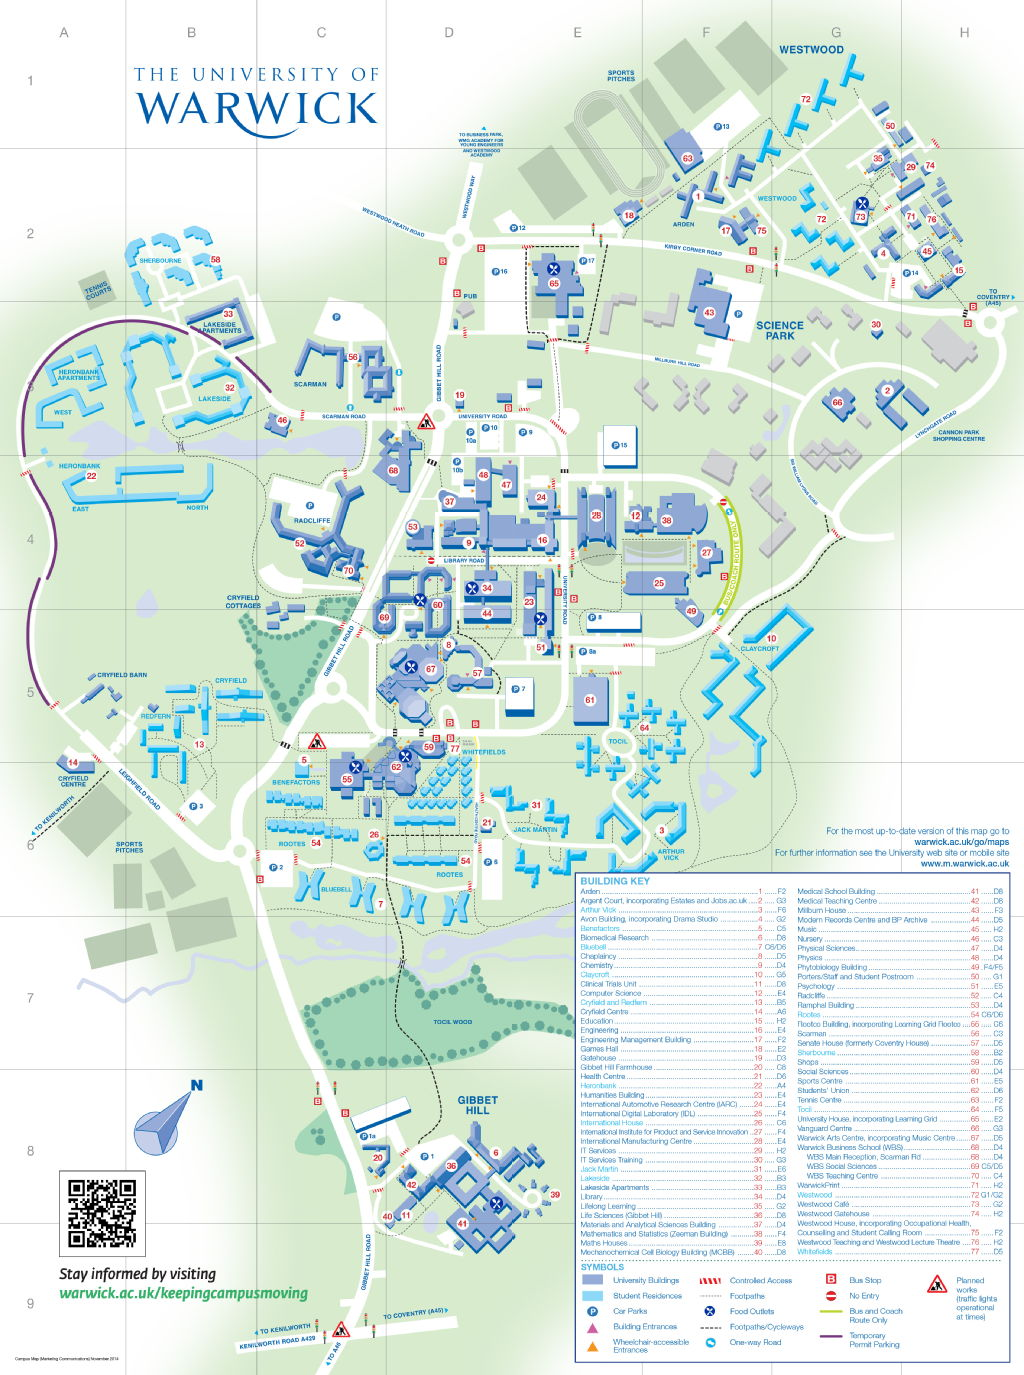 Interactive Campus Map Warwick University of Warwick | How to find the Music Centre